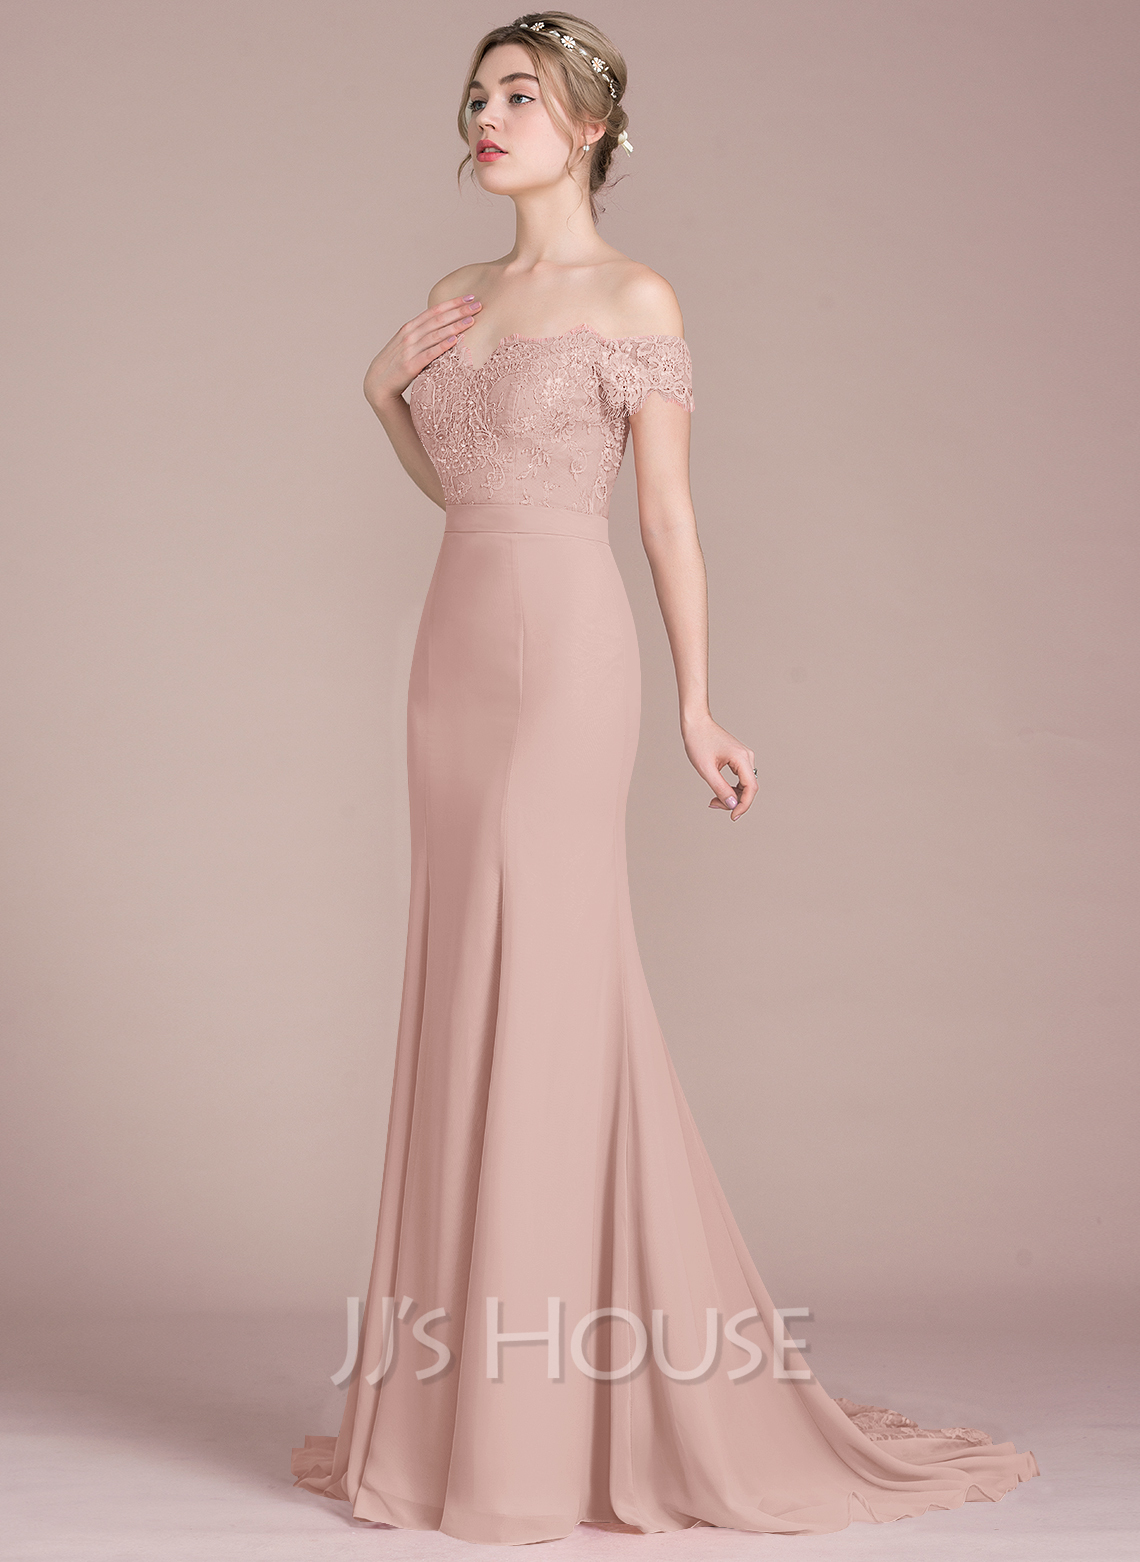 9bd9b118e4d4 Trumpet/Mermaid Off-the-Shoulder Court Train Chiffon Lace Bridesmaid Dress  With Beading. Loading zoom